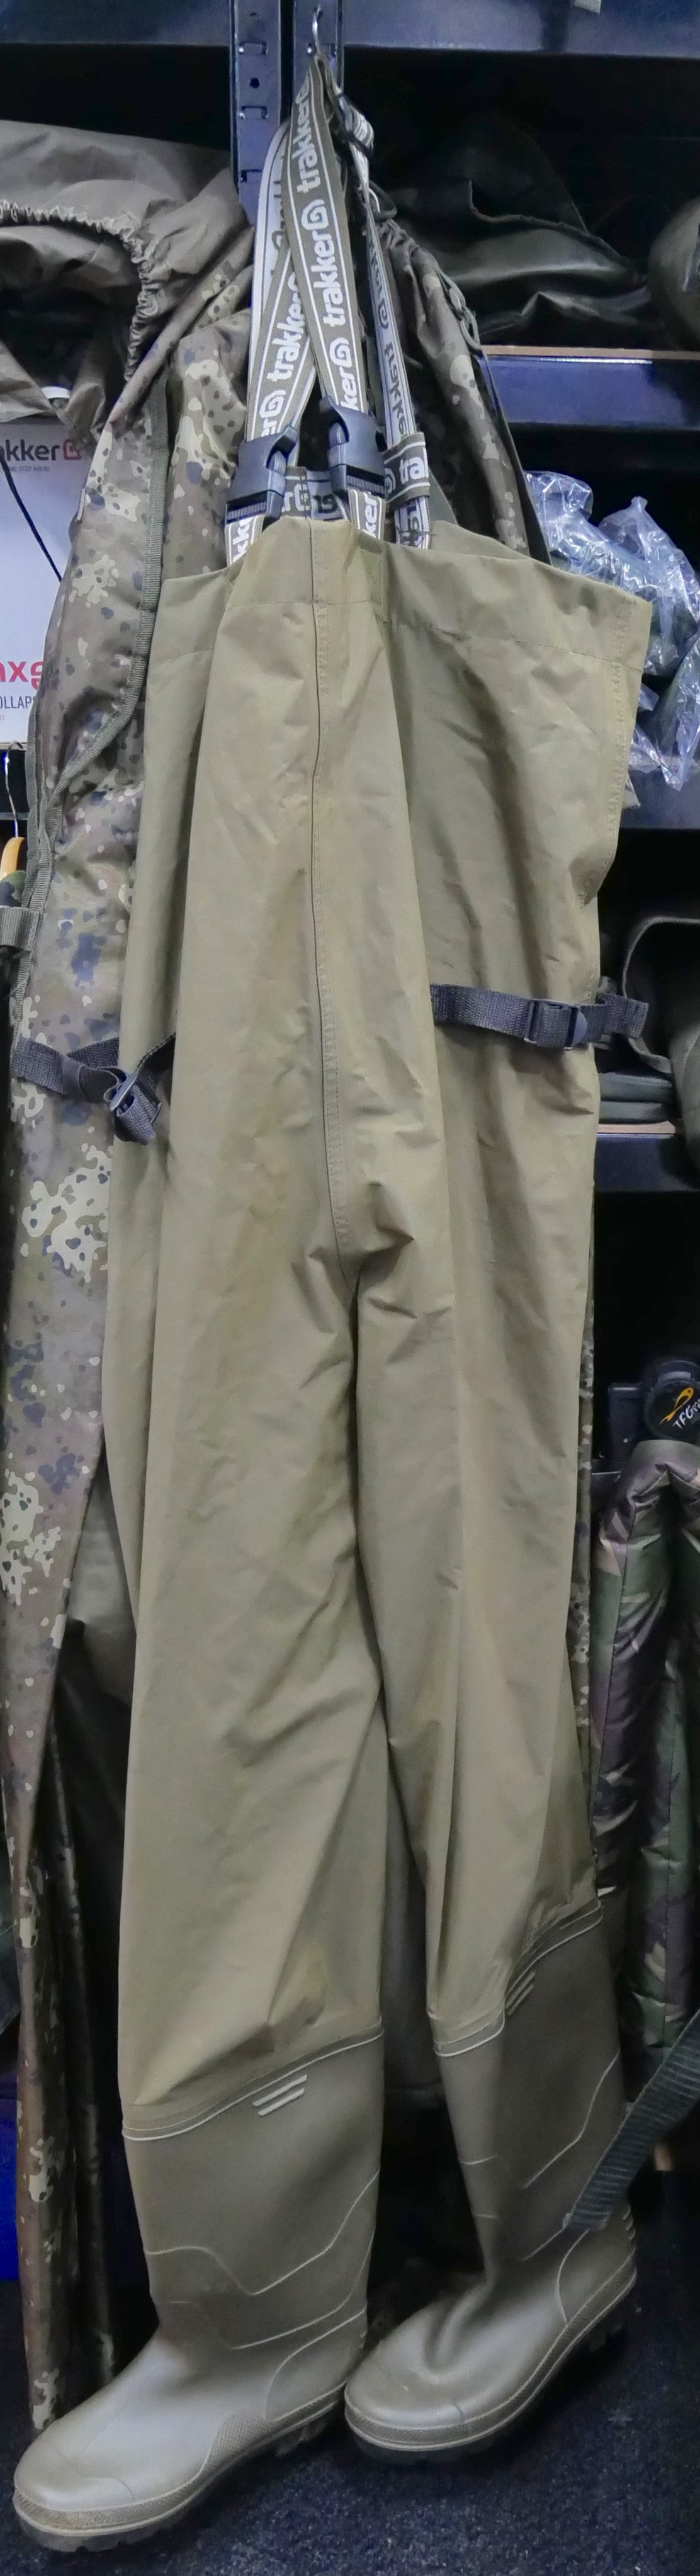 Trakker N2 Chest Waders Size 9